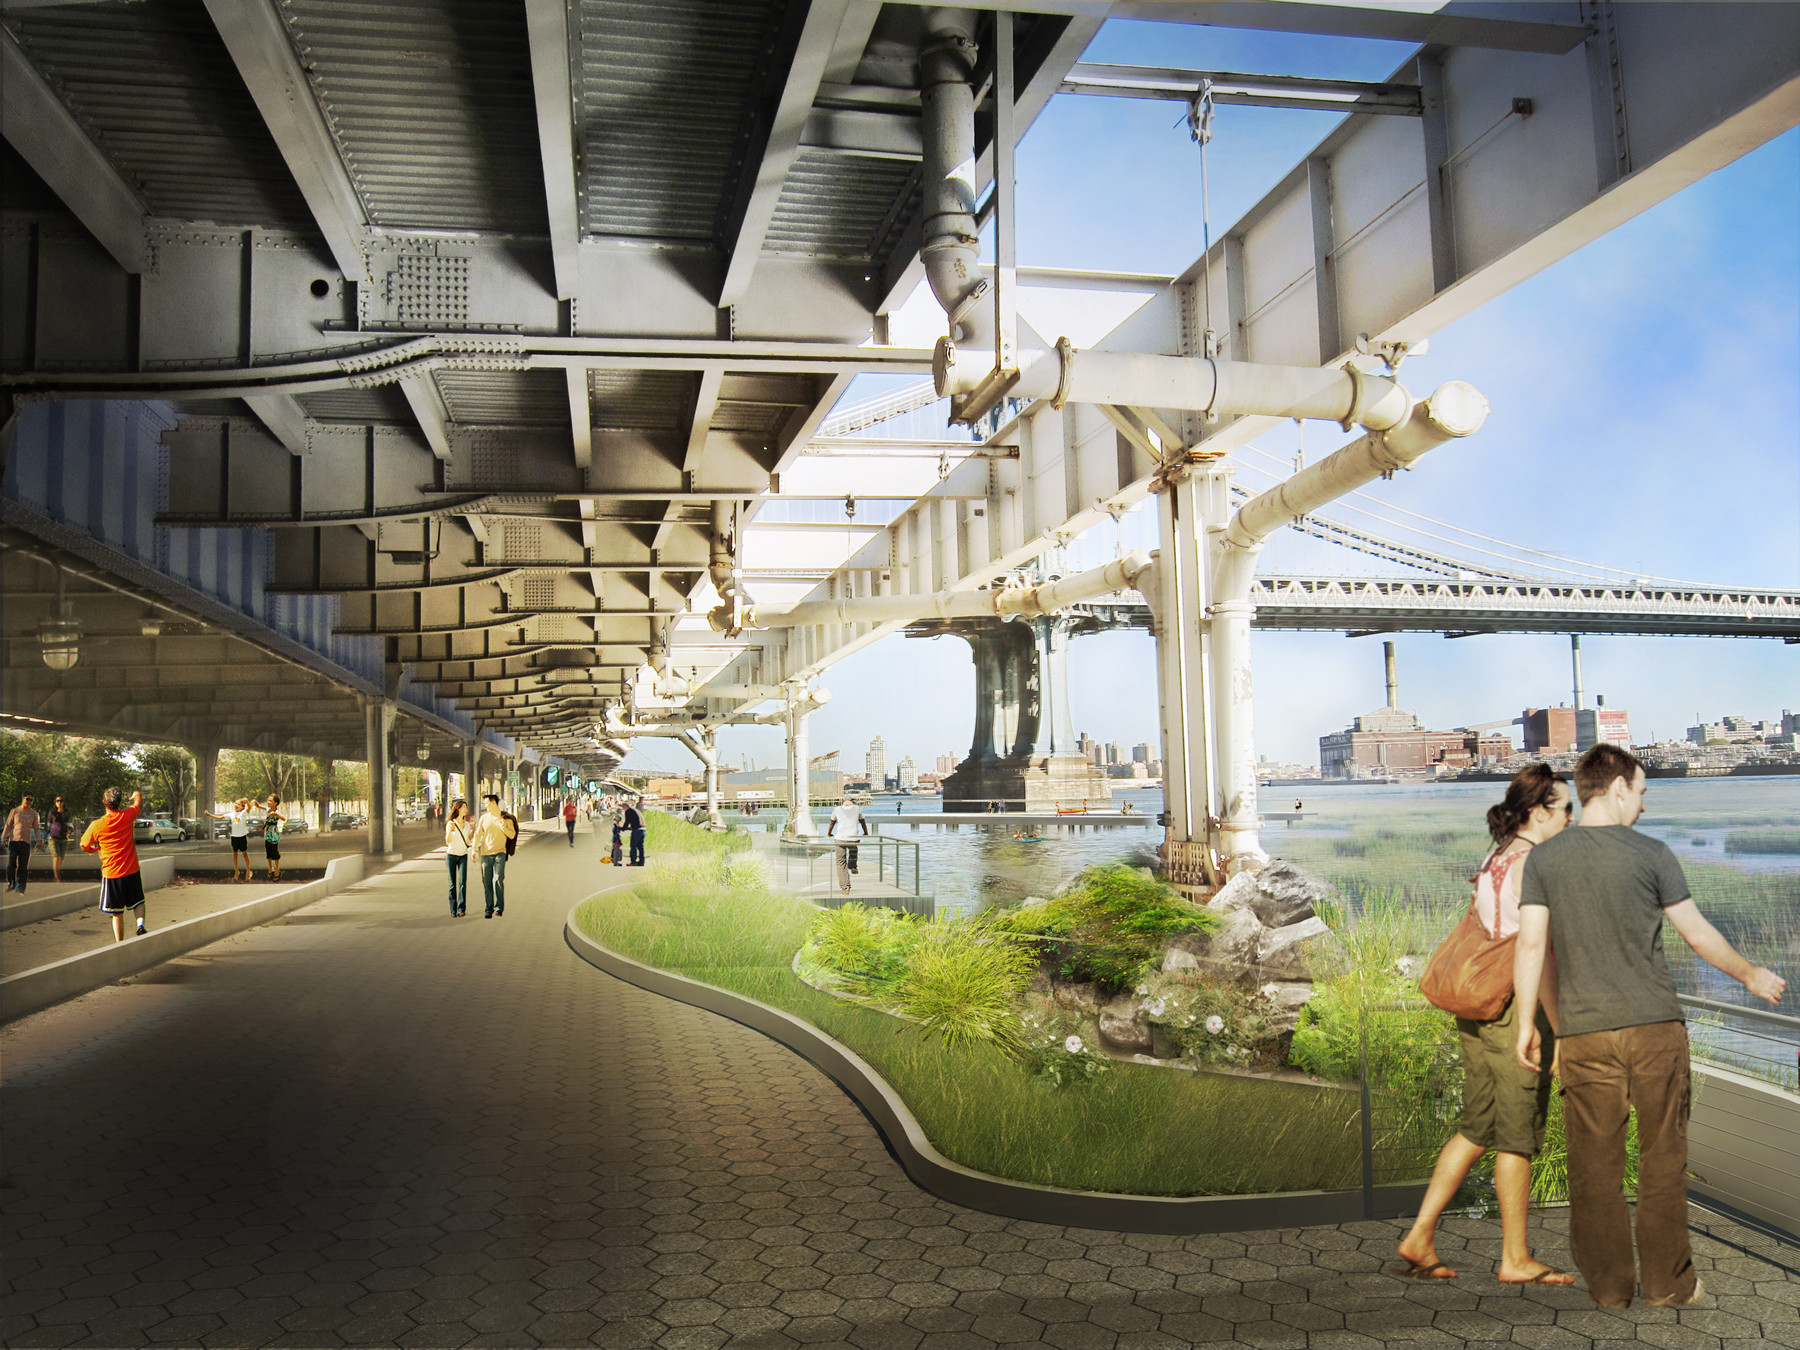 East River Blueway Plan / WXY Studio: New York City's Plan for Flood Barrier Along East River